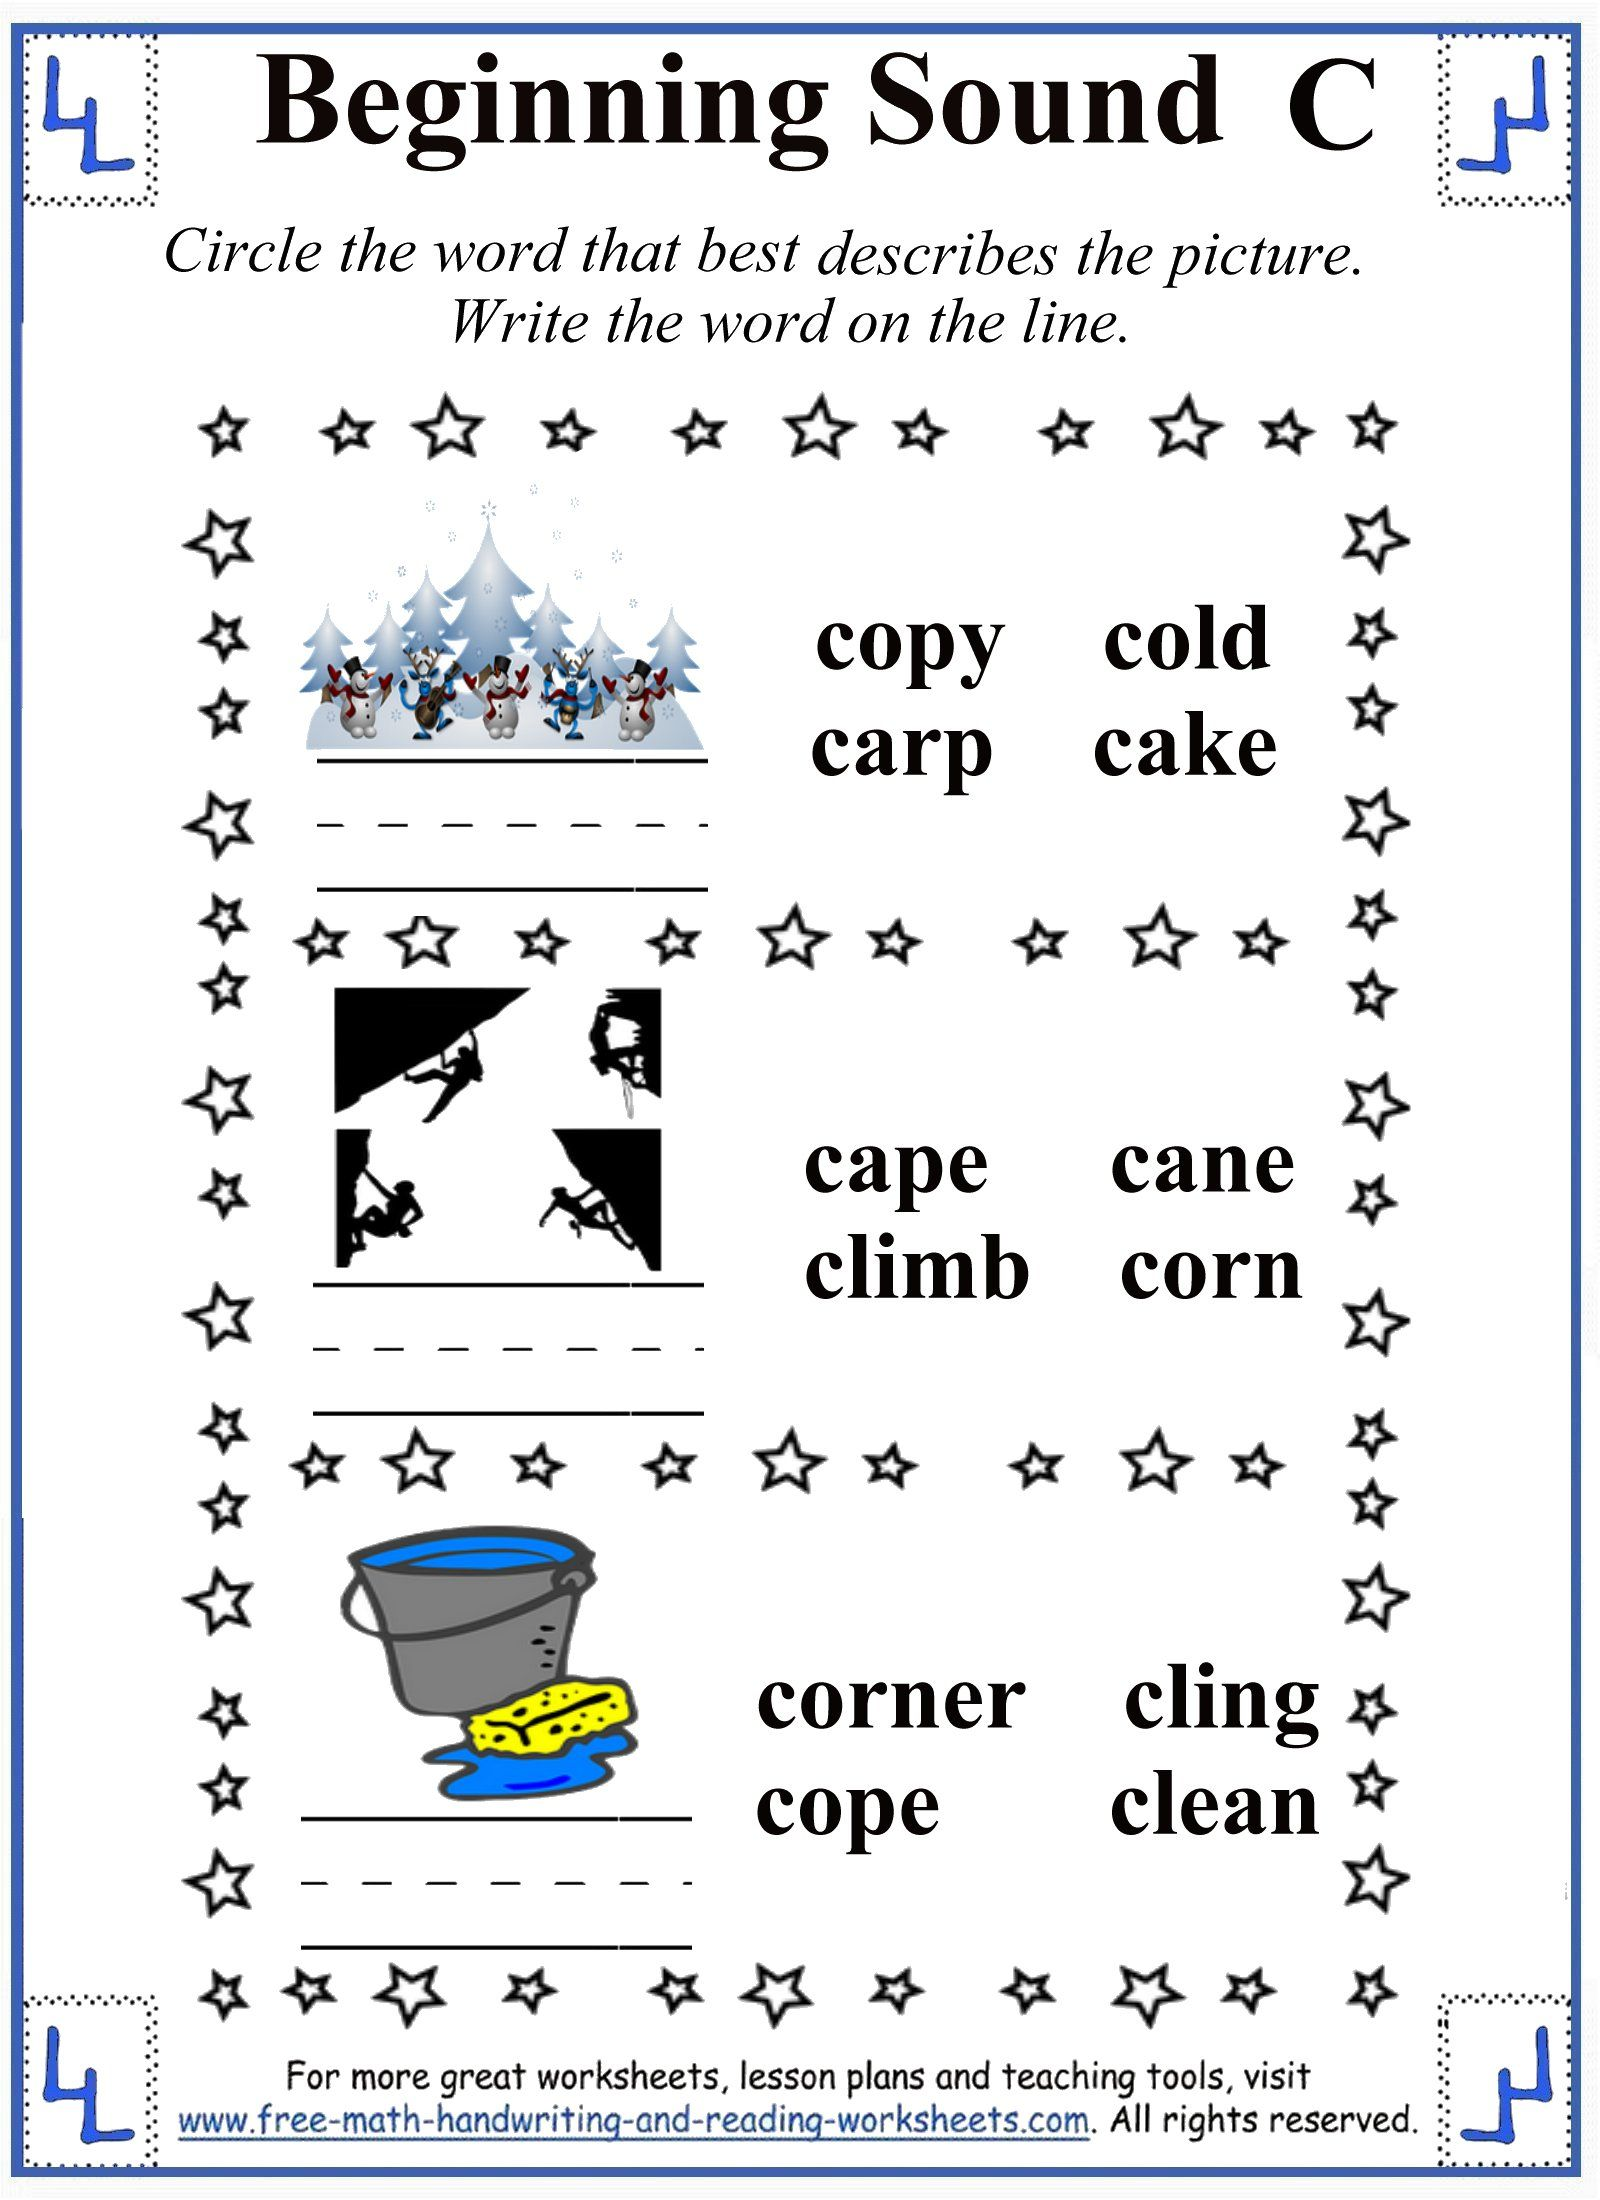 Worksheets Letter Sound Worksheets printable letter c worksheets activities consonant letters learn beginning and ending sounds with these n for elementary pre k students find consonan